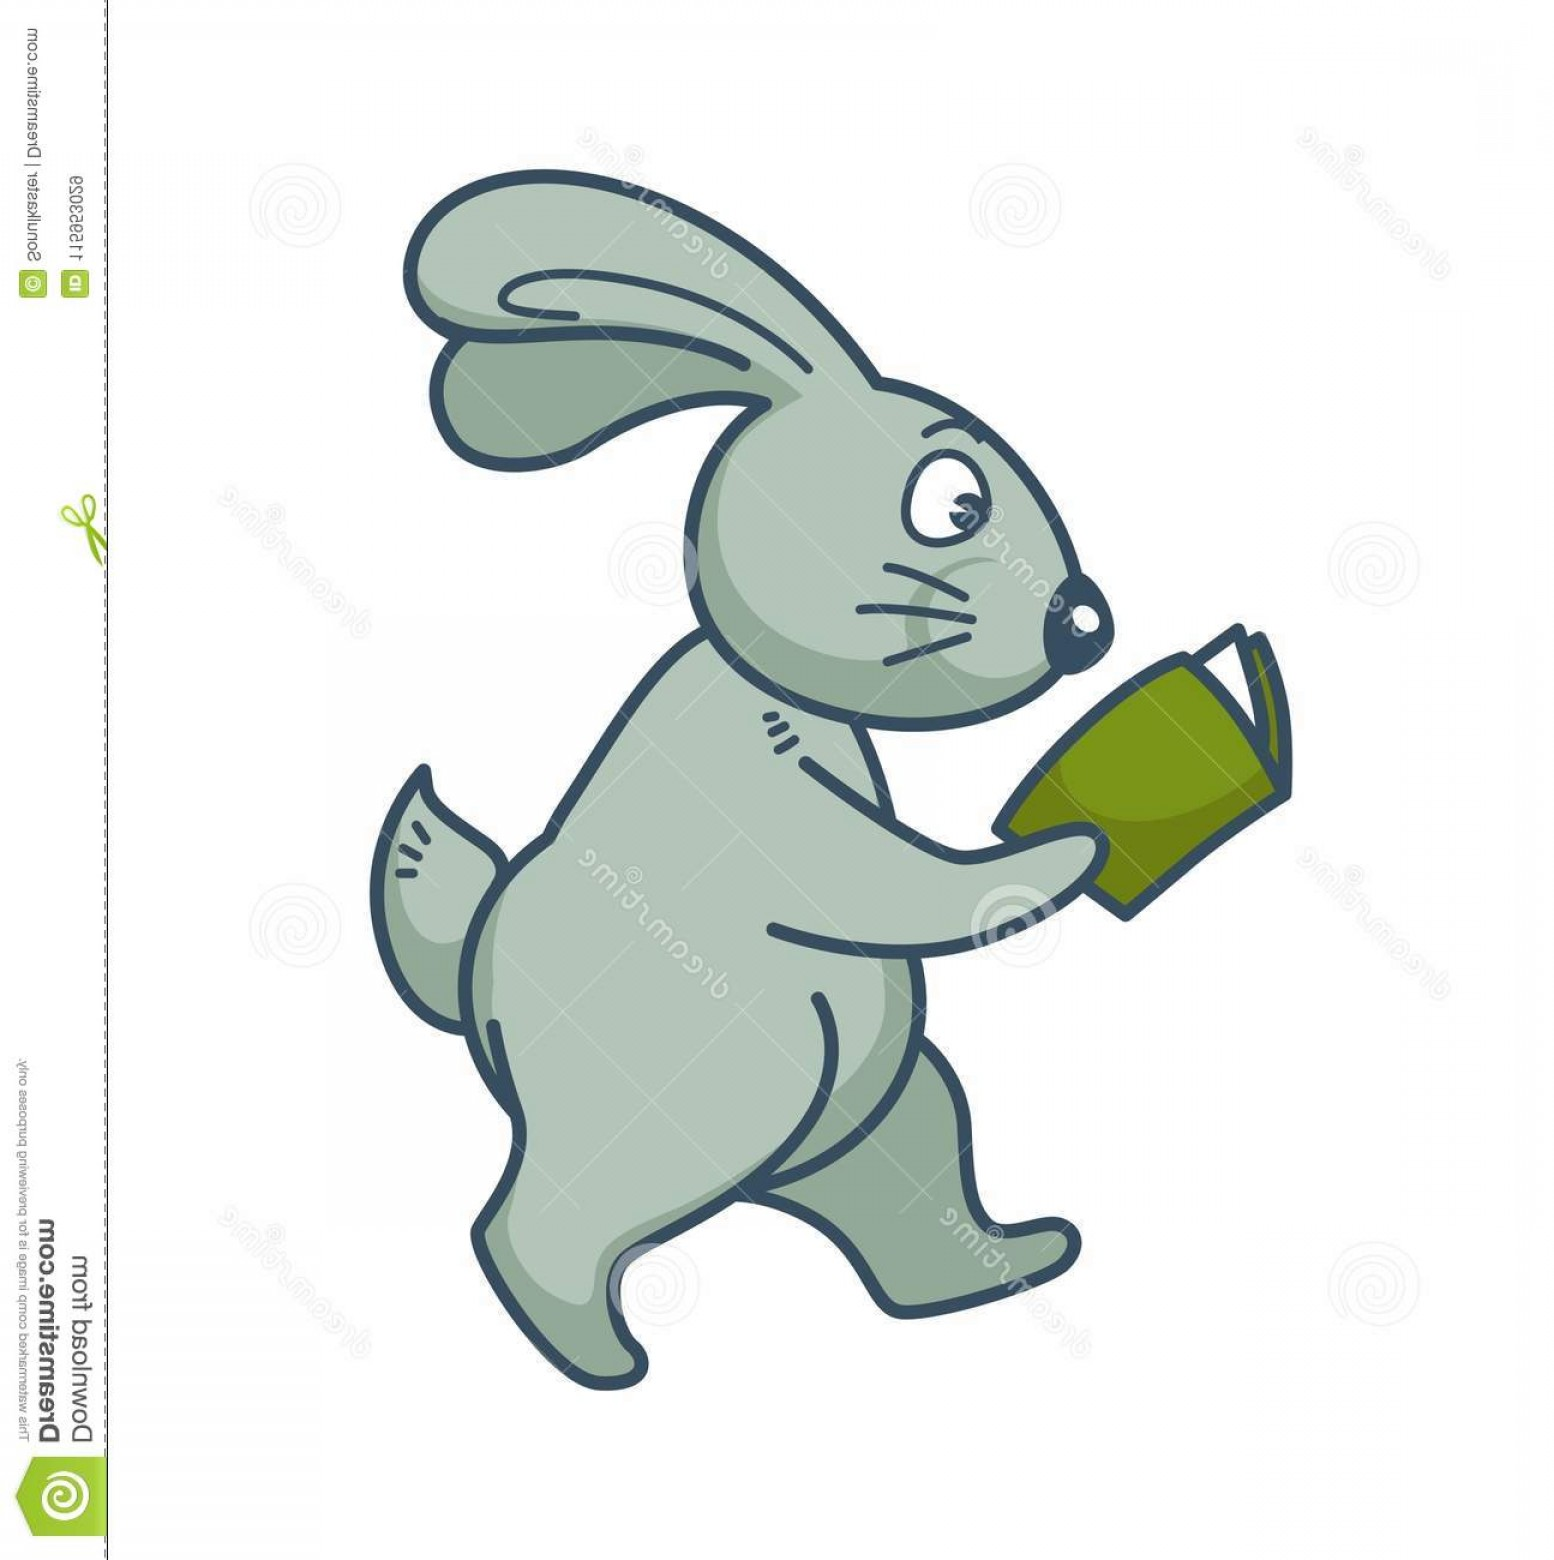 Smarter Vector Art: Bunny Long Ears Walks Reads Book Bunny Long Ears Walks Reads Book Green Hardcover Adorable Forest Animal Image